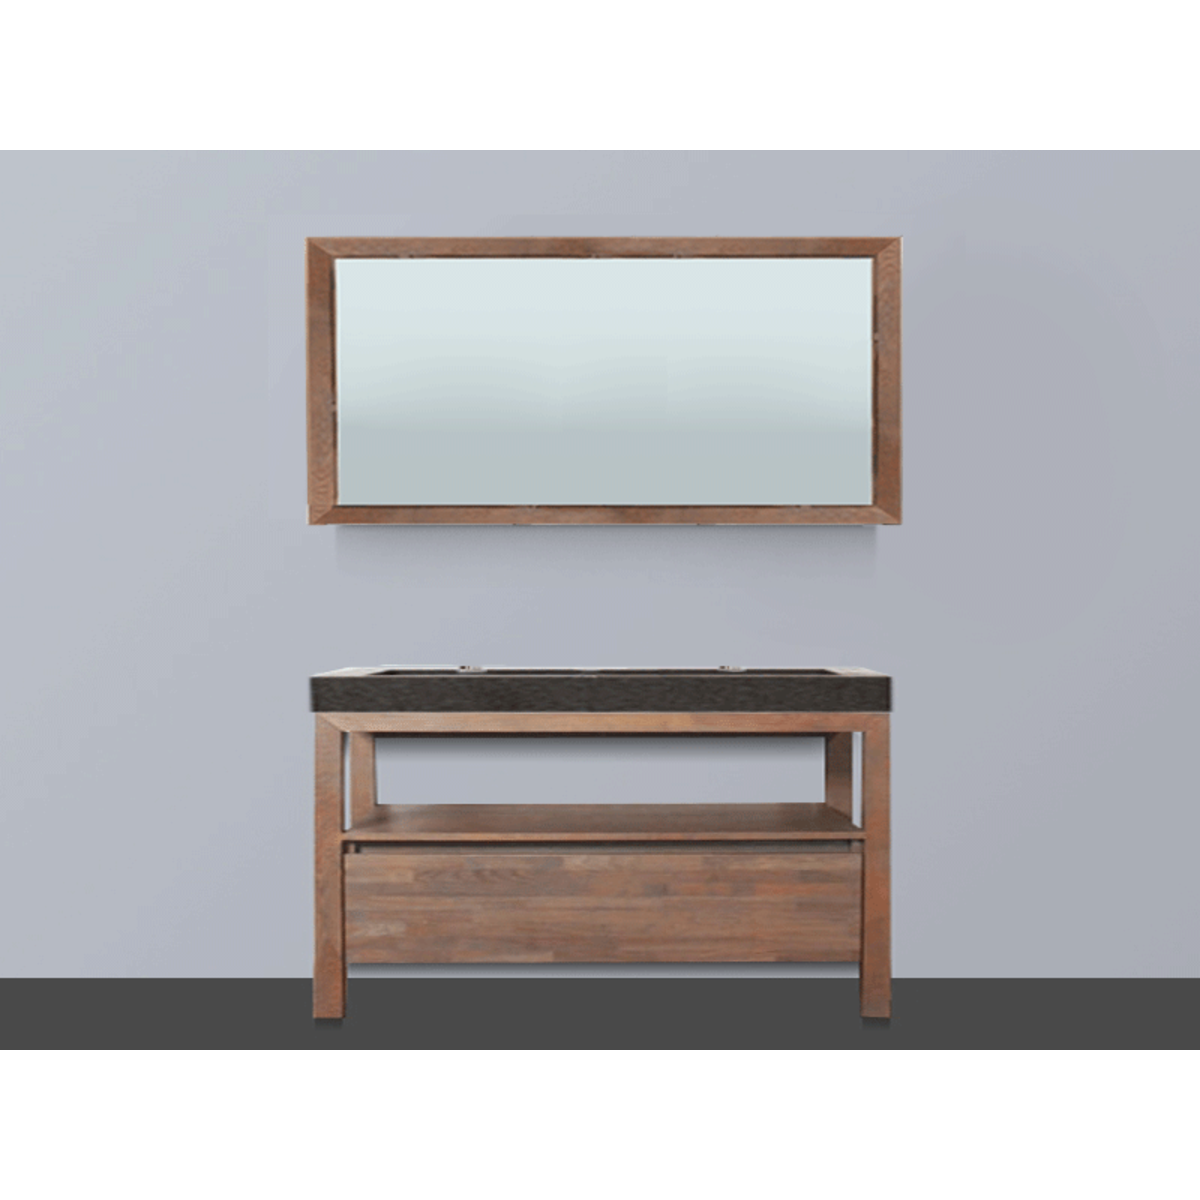 saniclass natural wood meuble salle de bain avec miroir 120cm grey wash avec vasque en pierre. Black Bedroom Furniture Sets. Home Design Ideas